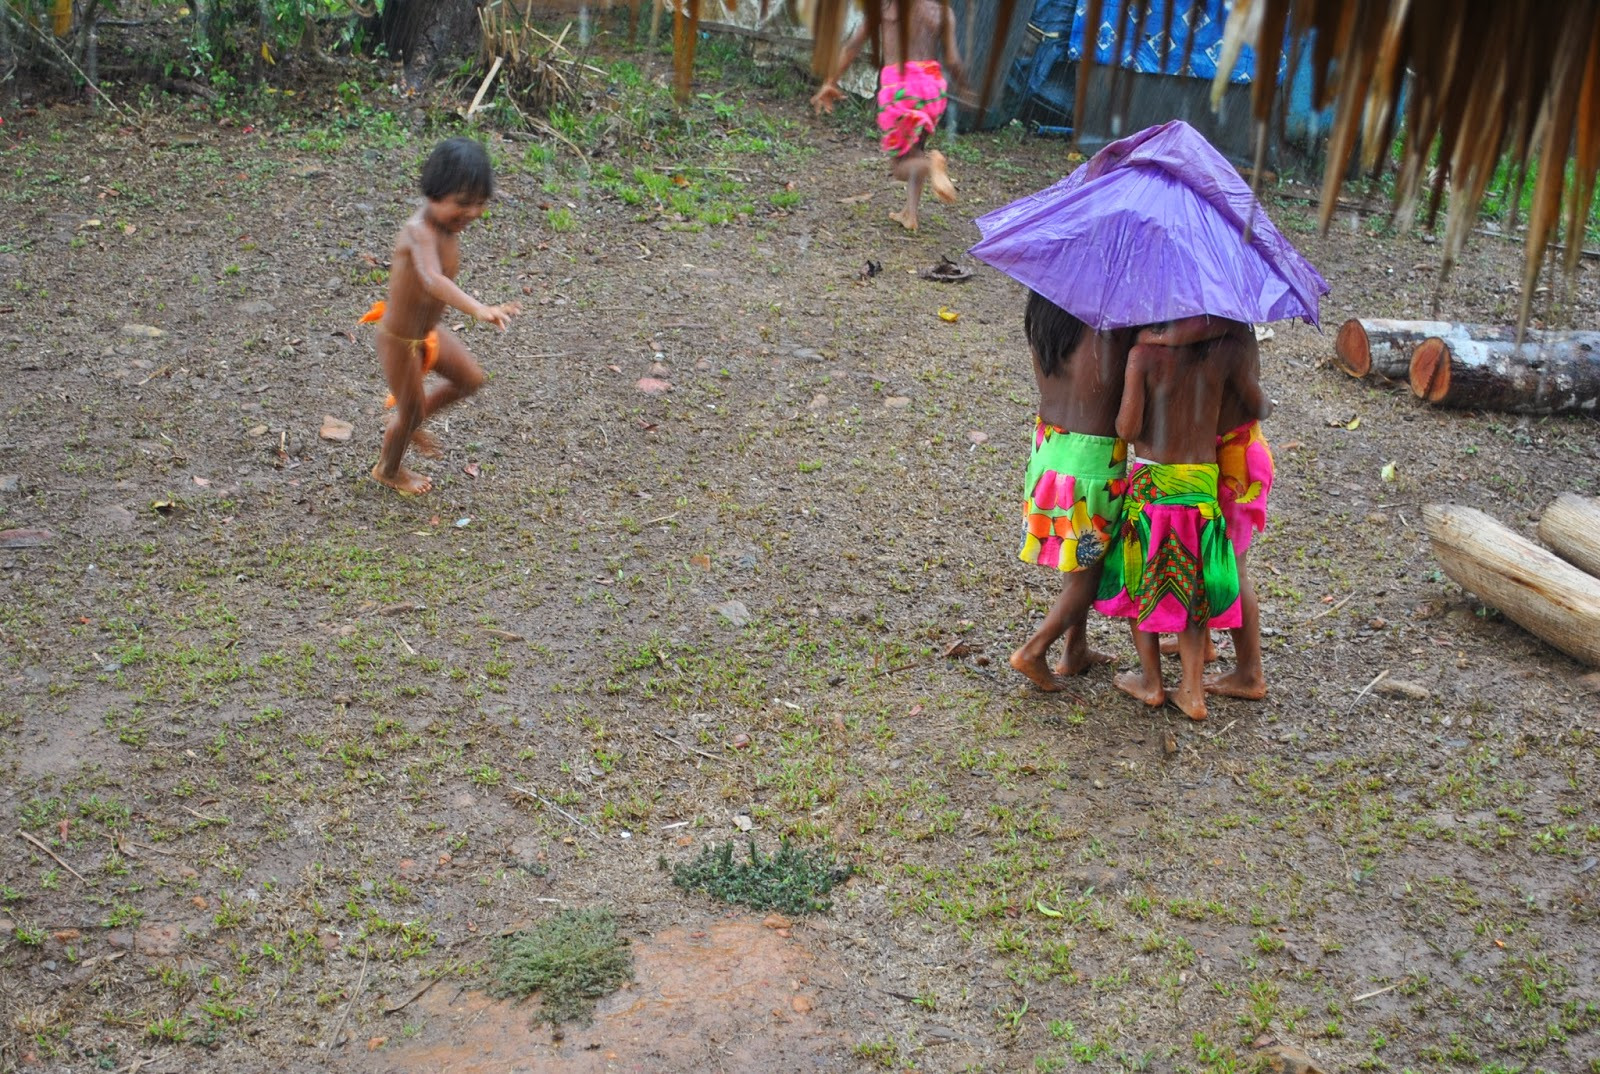 Farsighted Fly Girl Embera Children Playing In The Rain